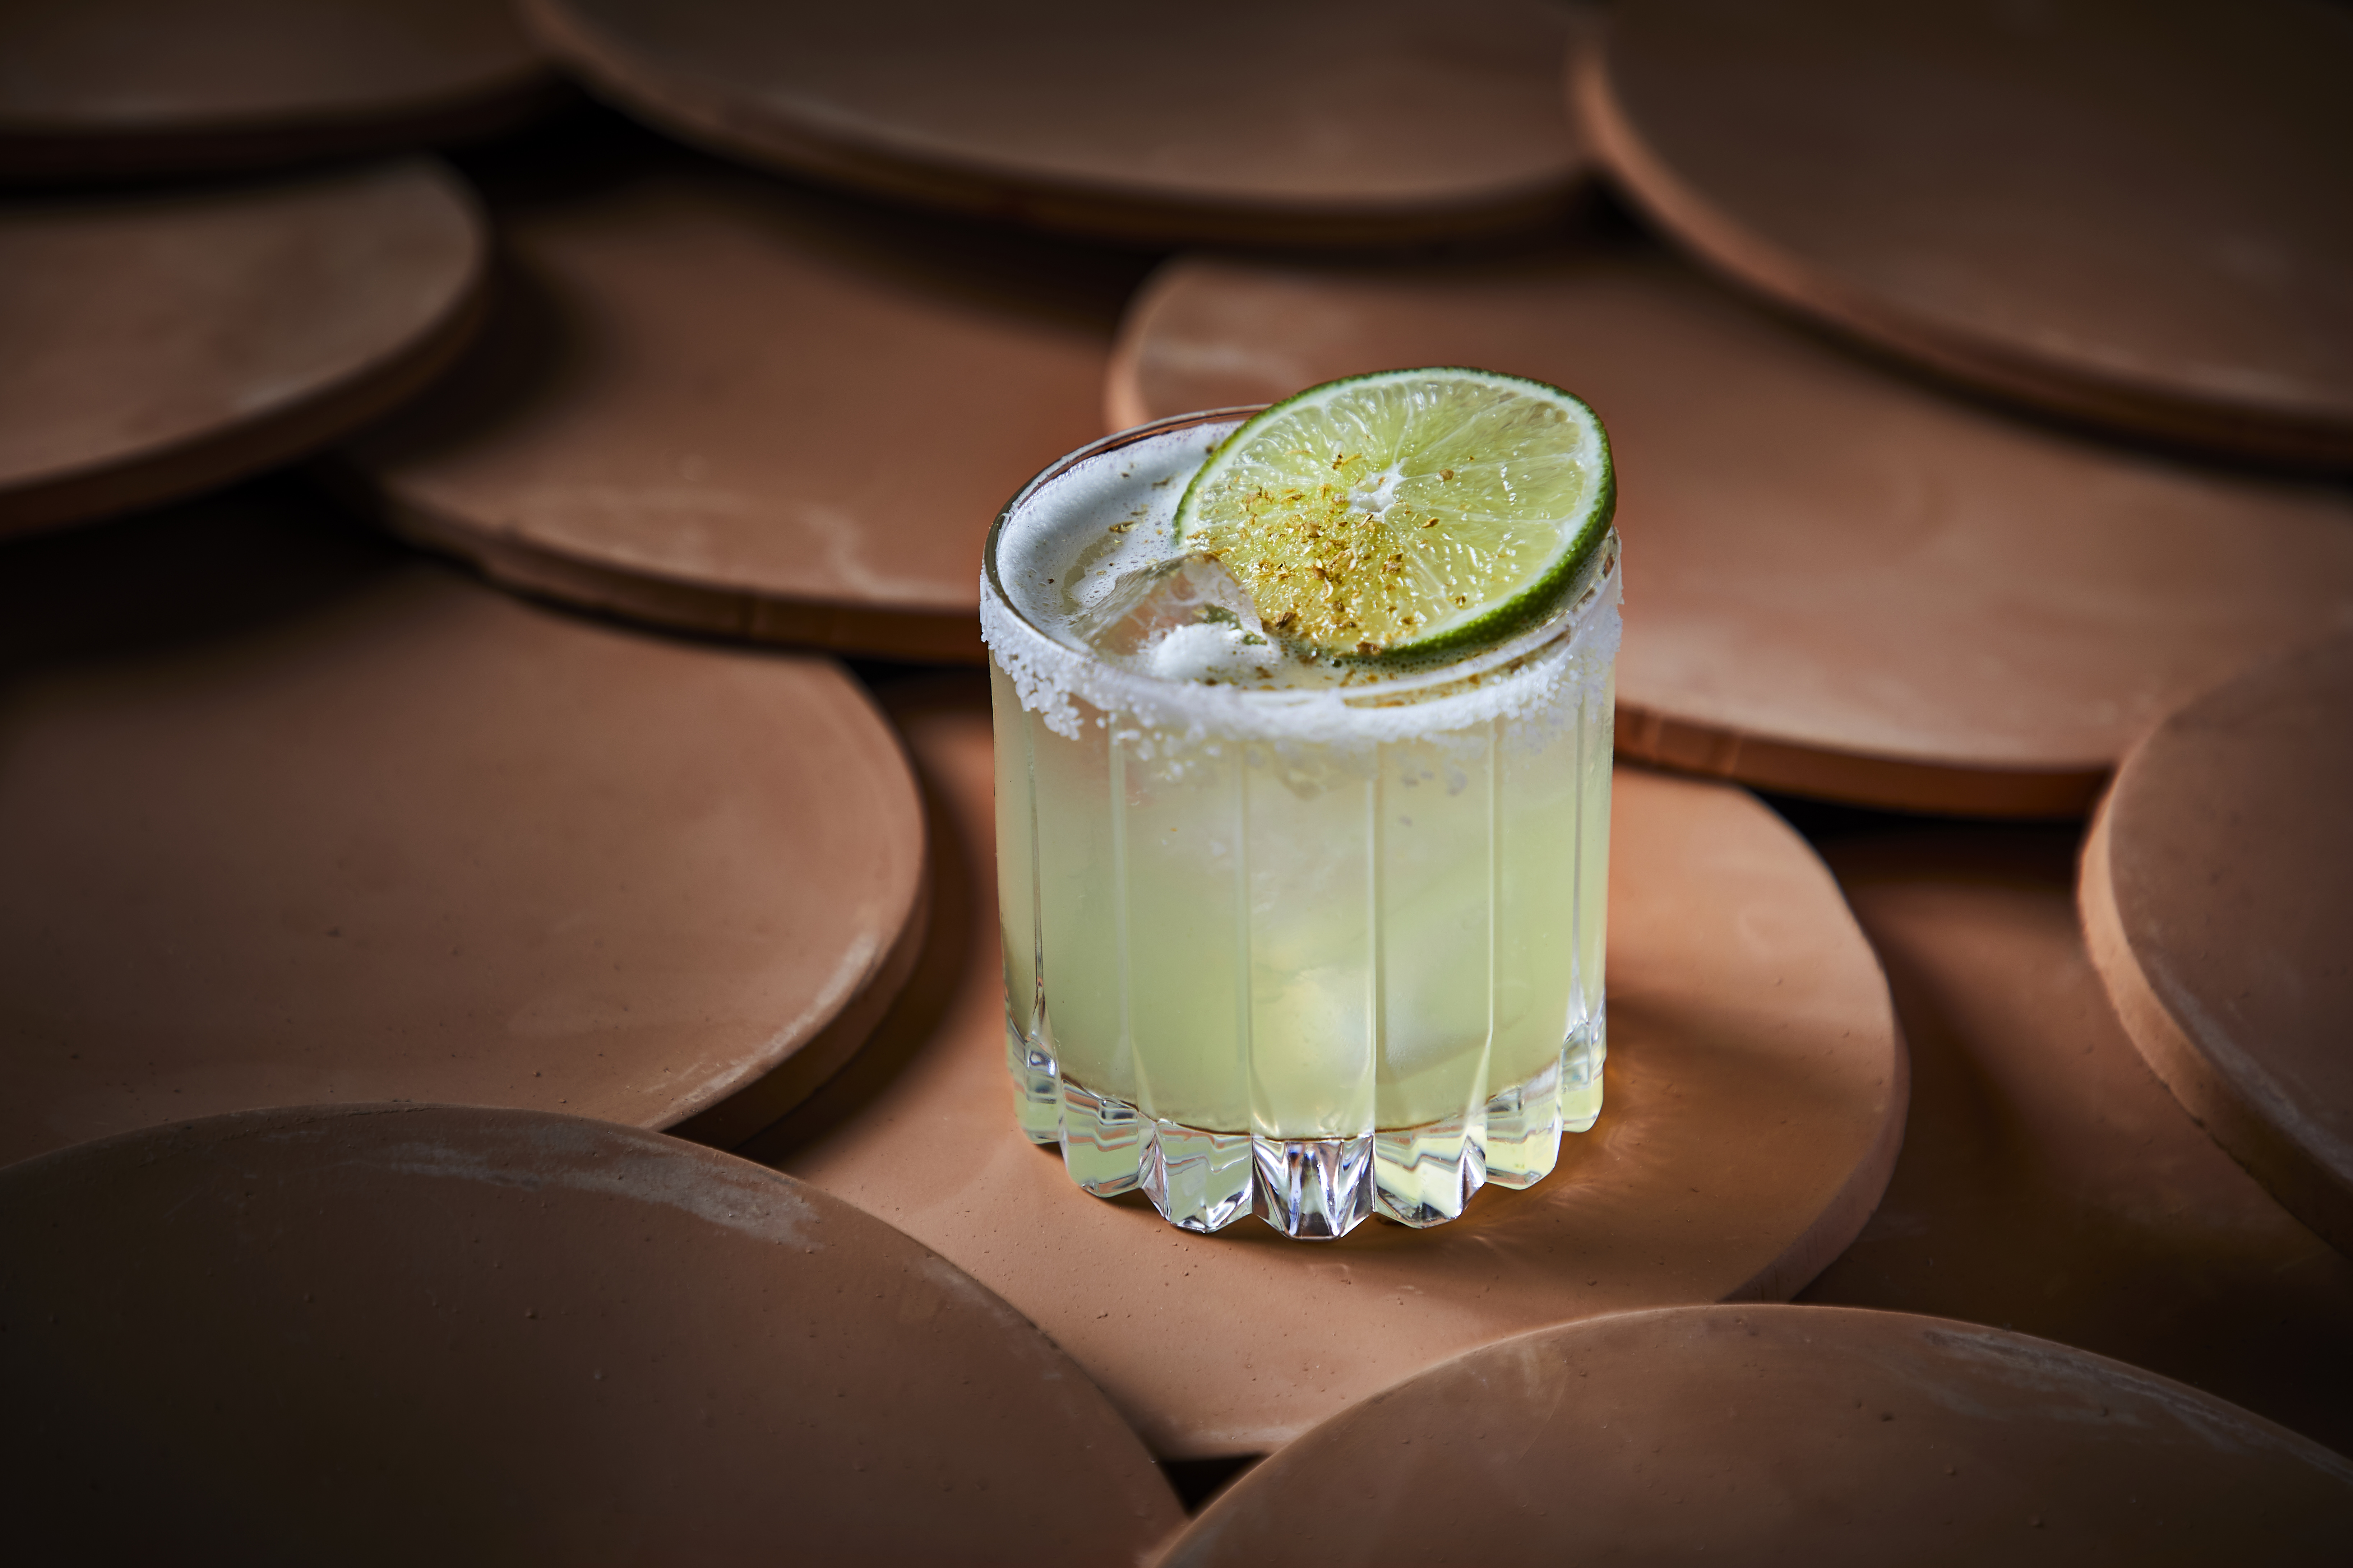 A margarita in a high ball glass with a wedge of lime.